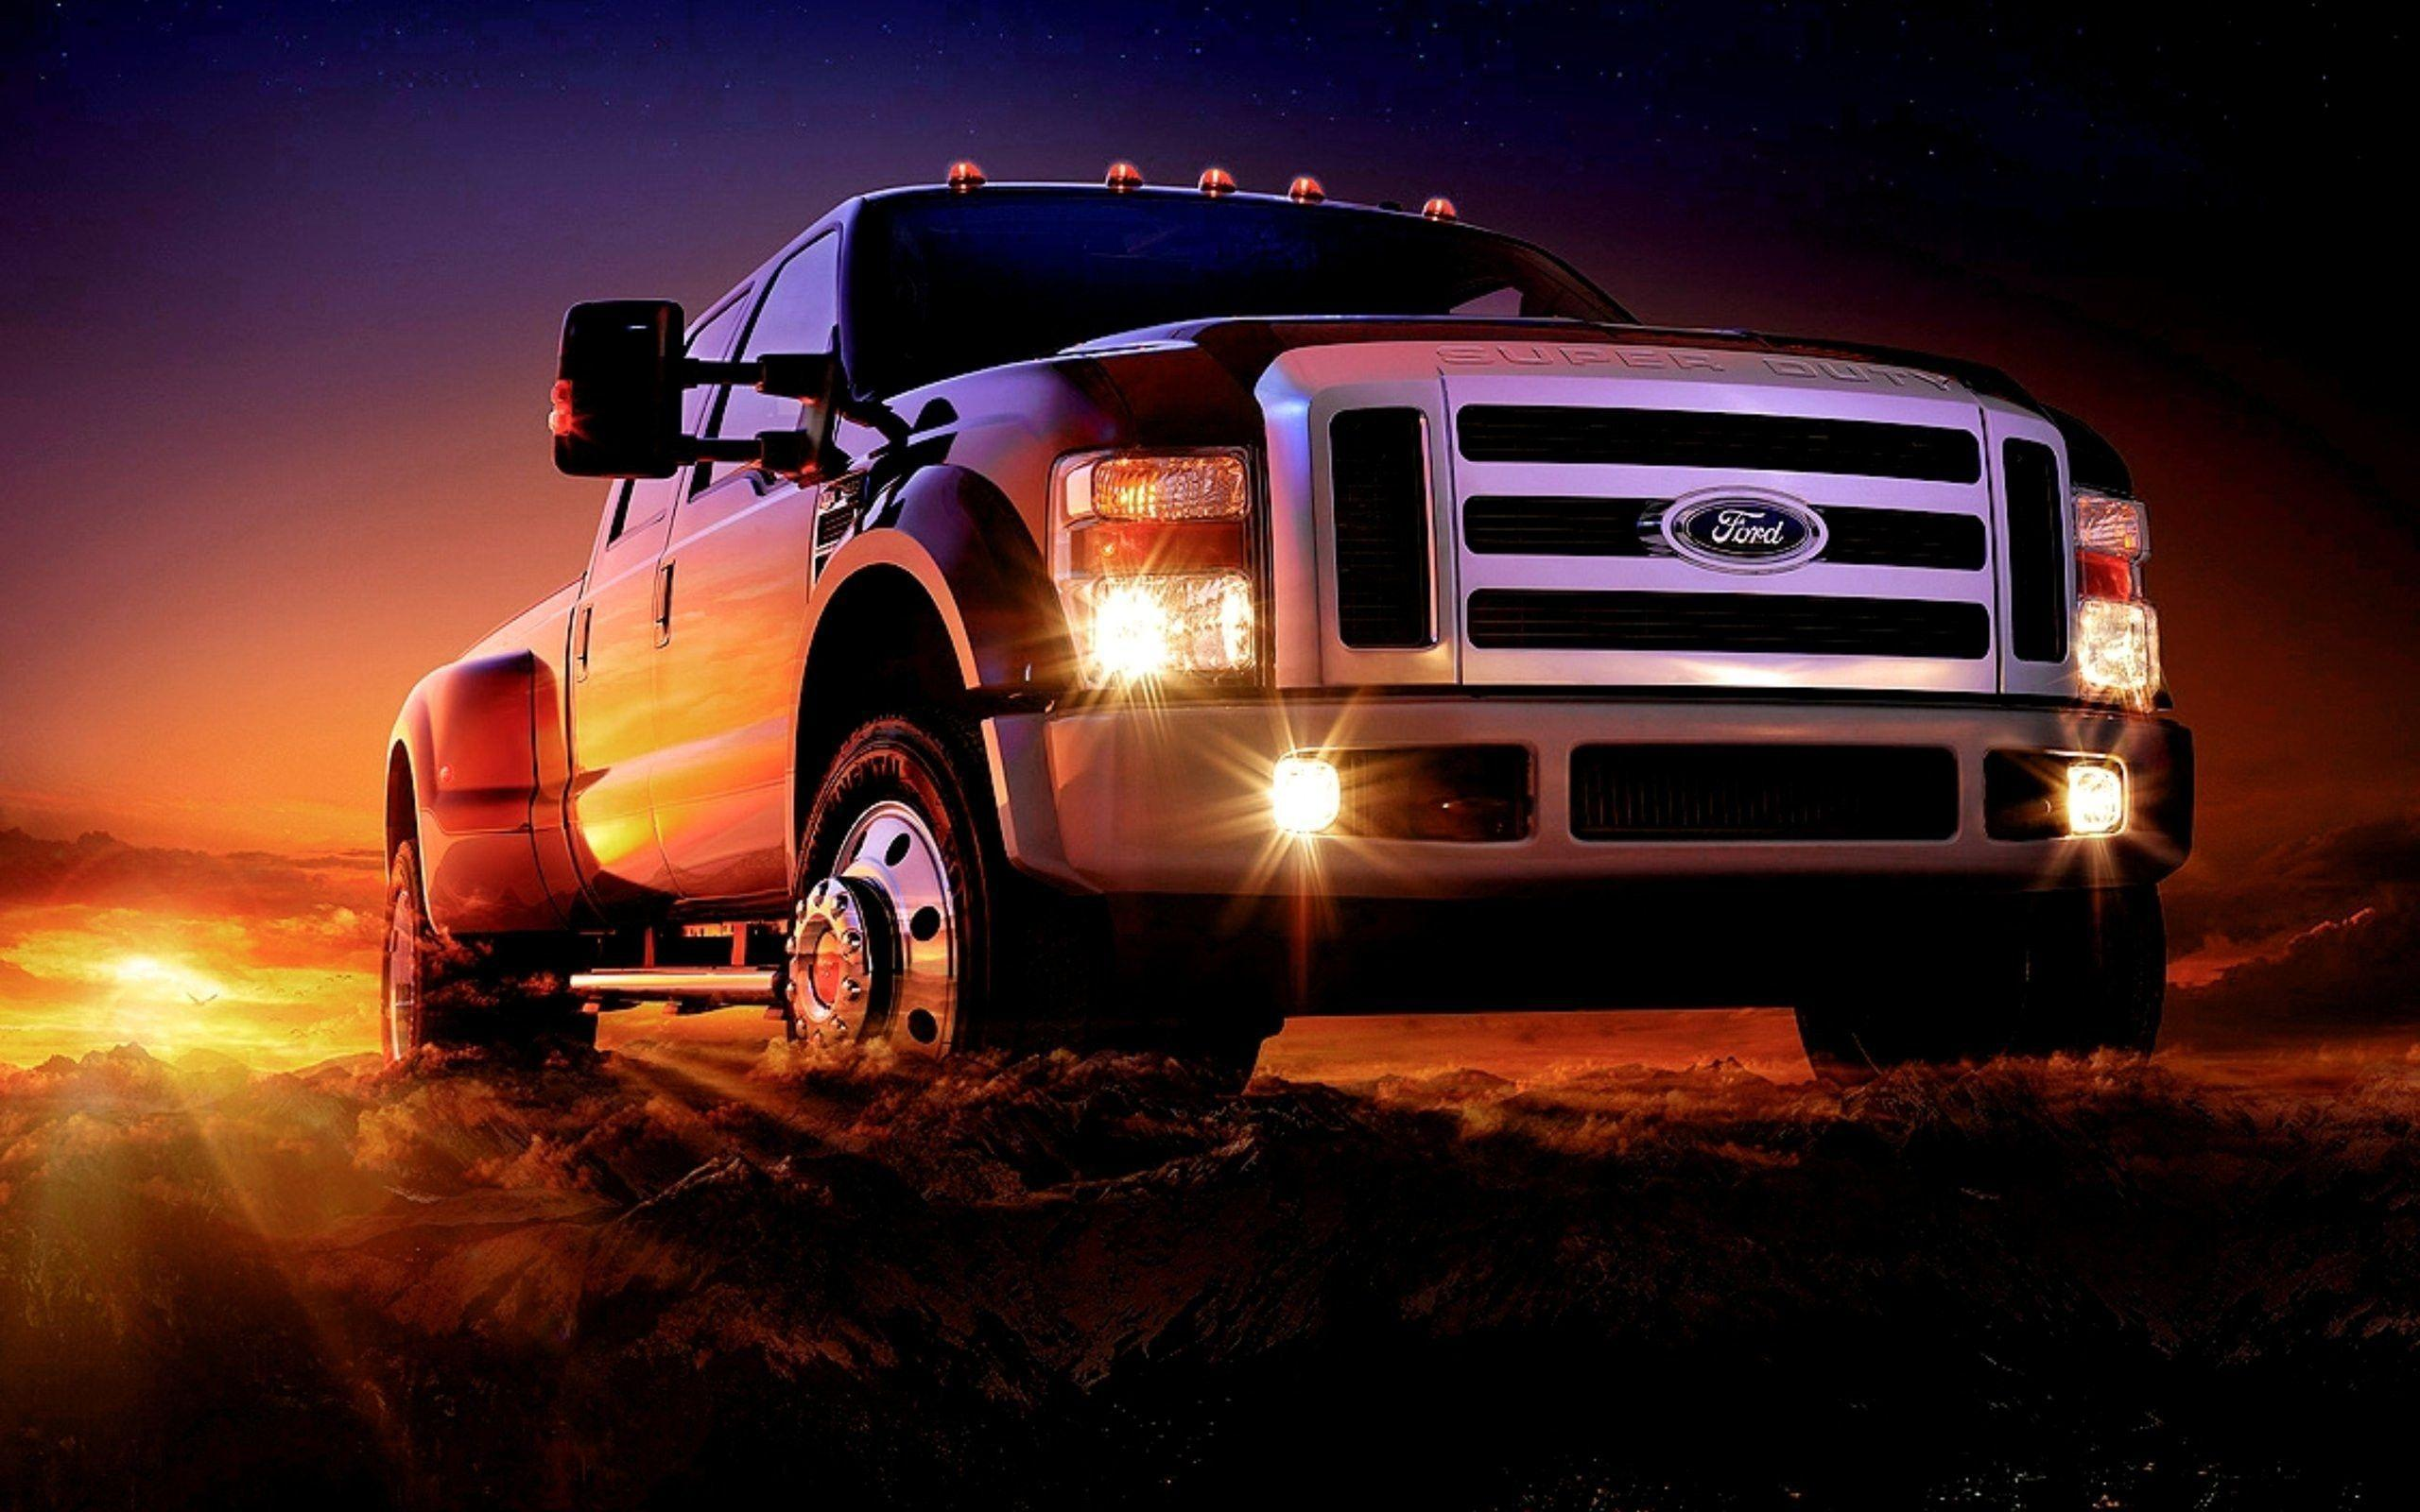 Cool Truck Wallpapers   Top Cool Truck Backgrounds 2560x1600